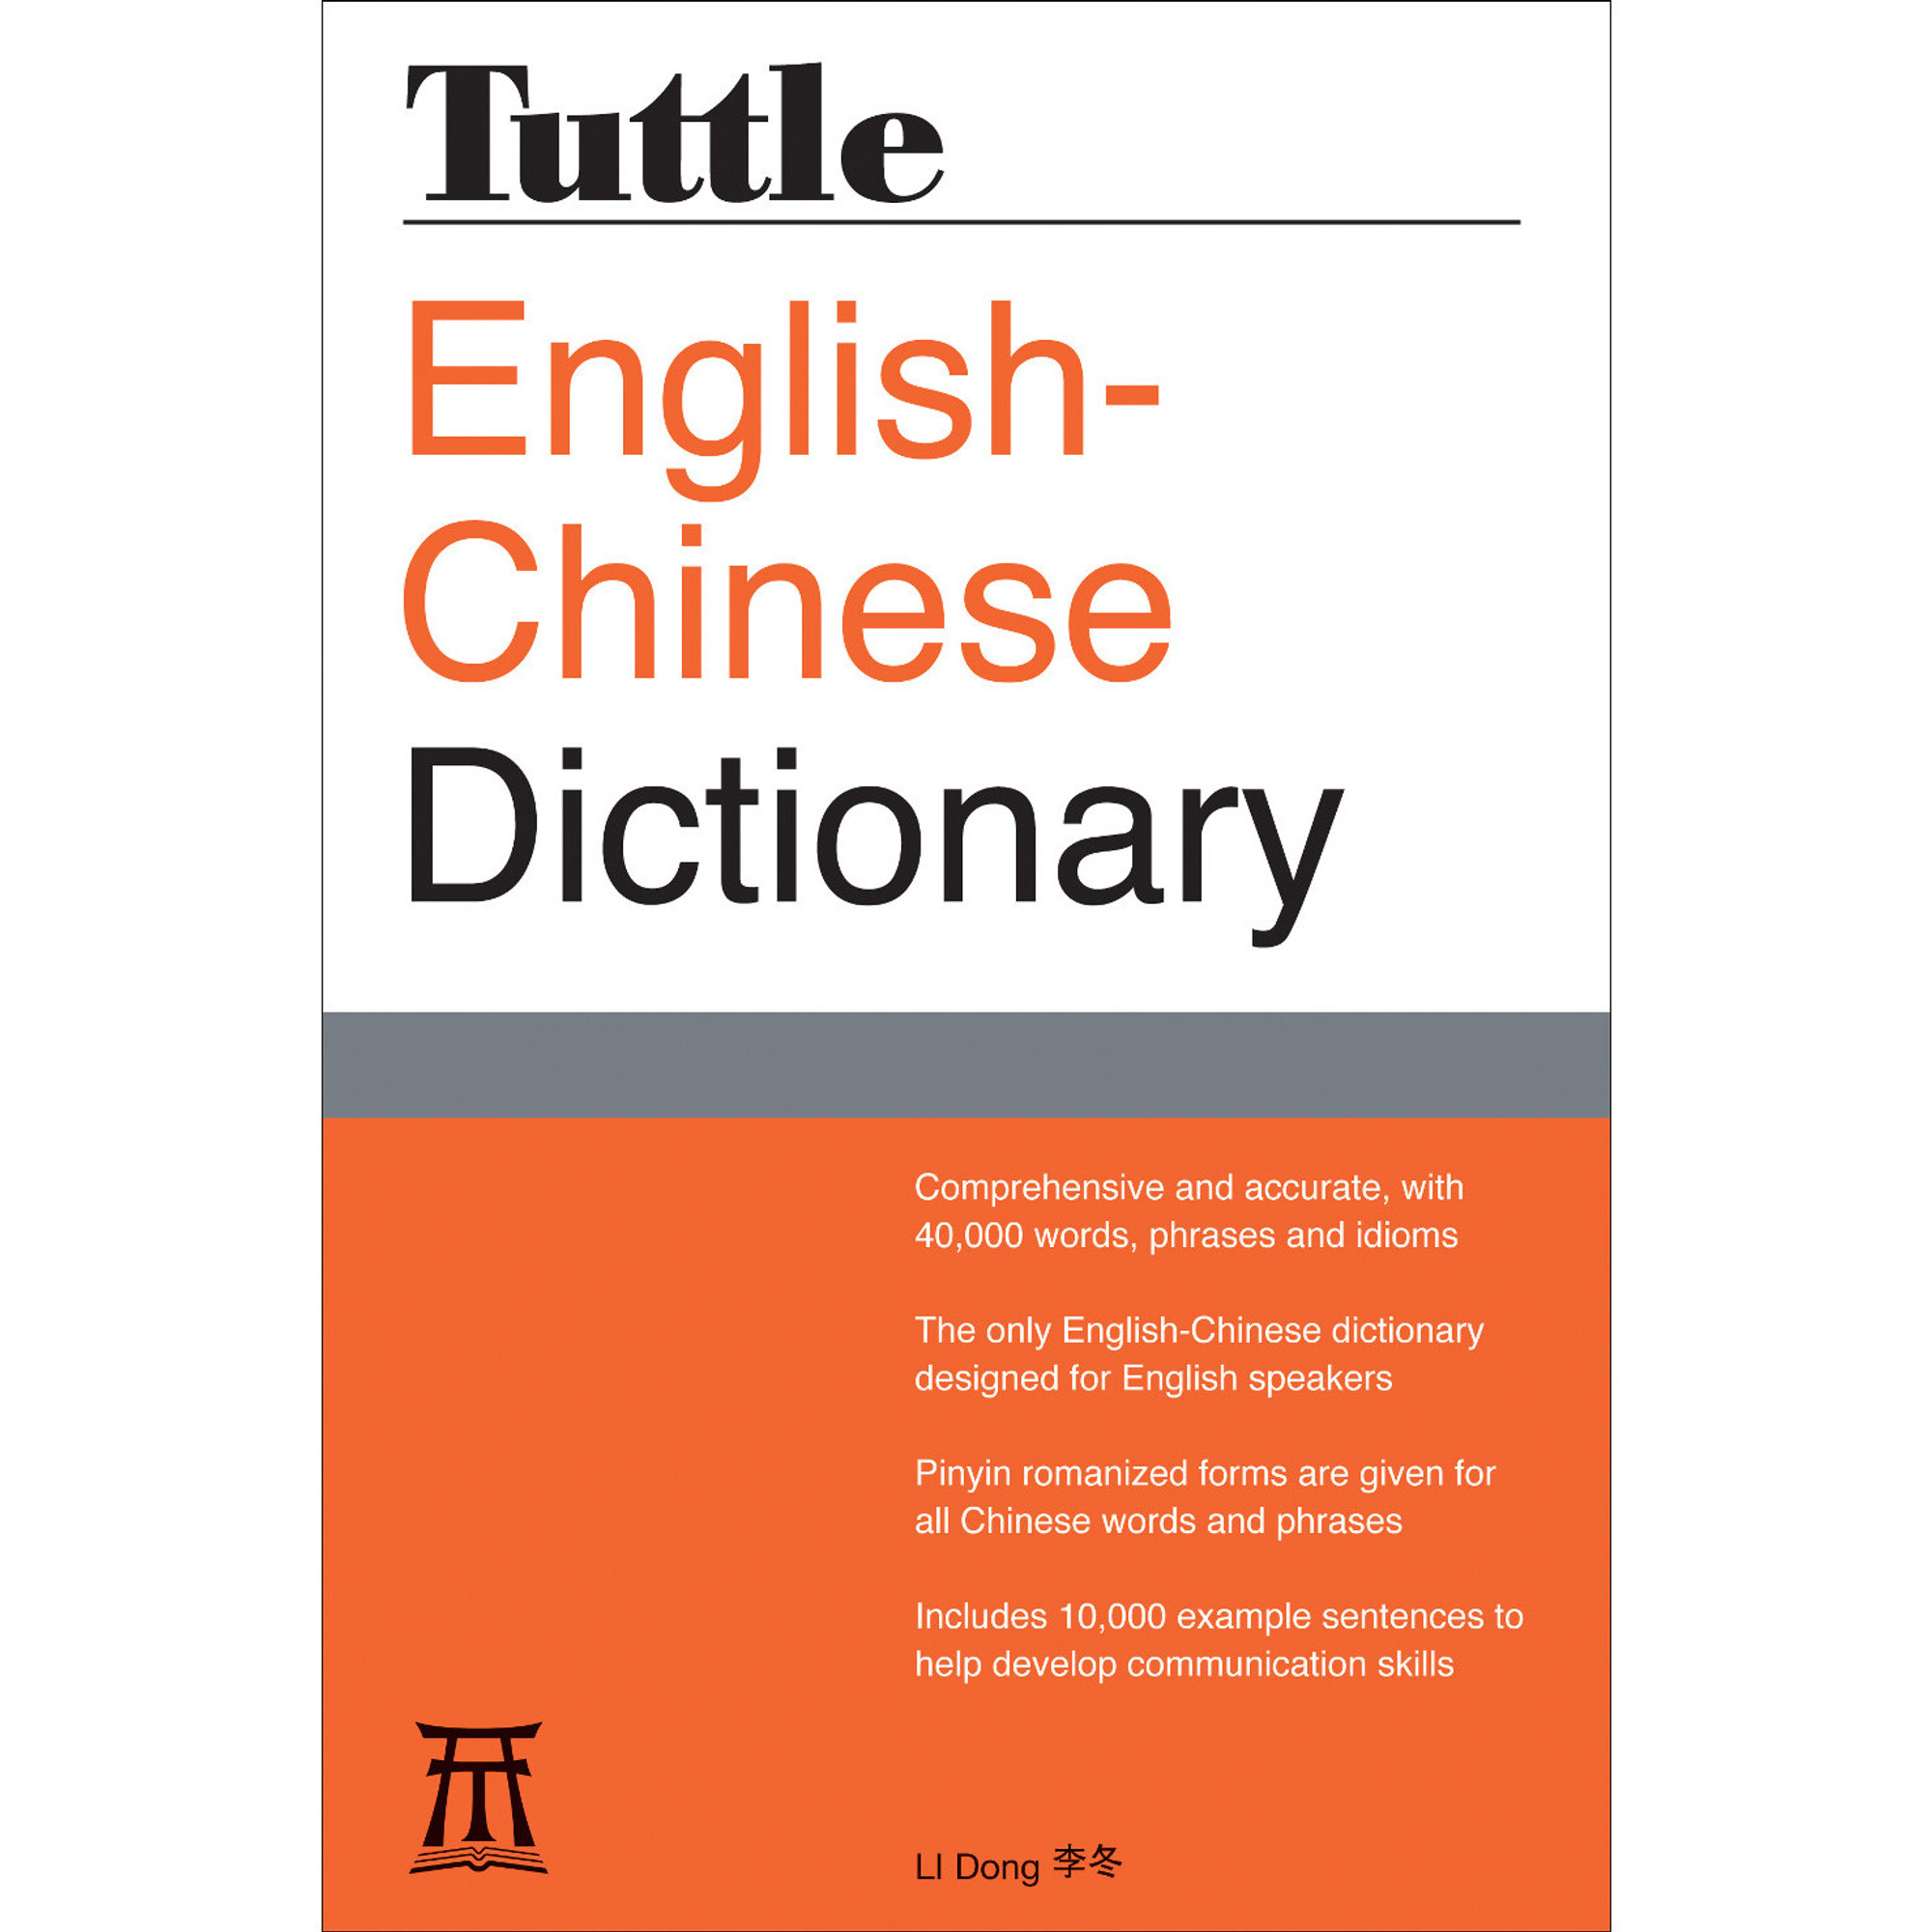 Tuttle English-Chinese Dictionary (9780804845809)